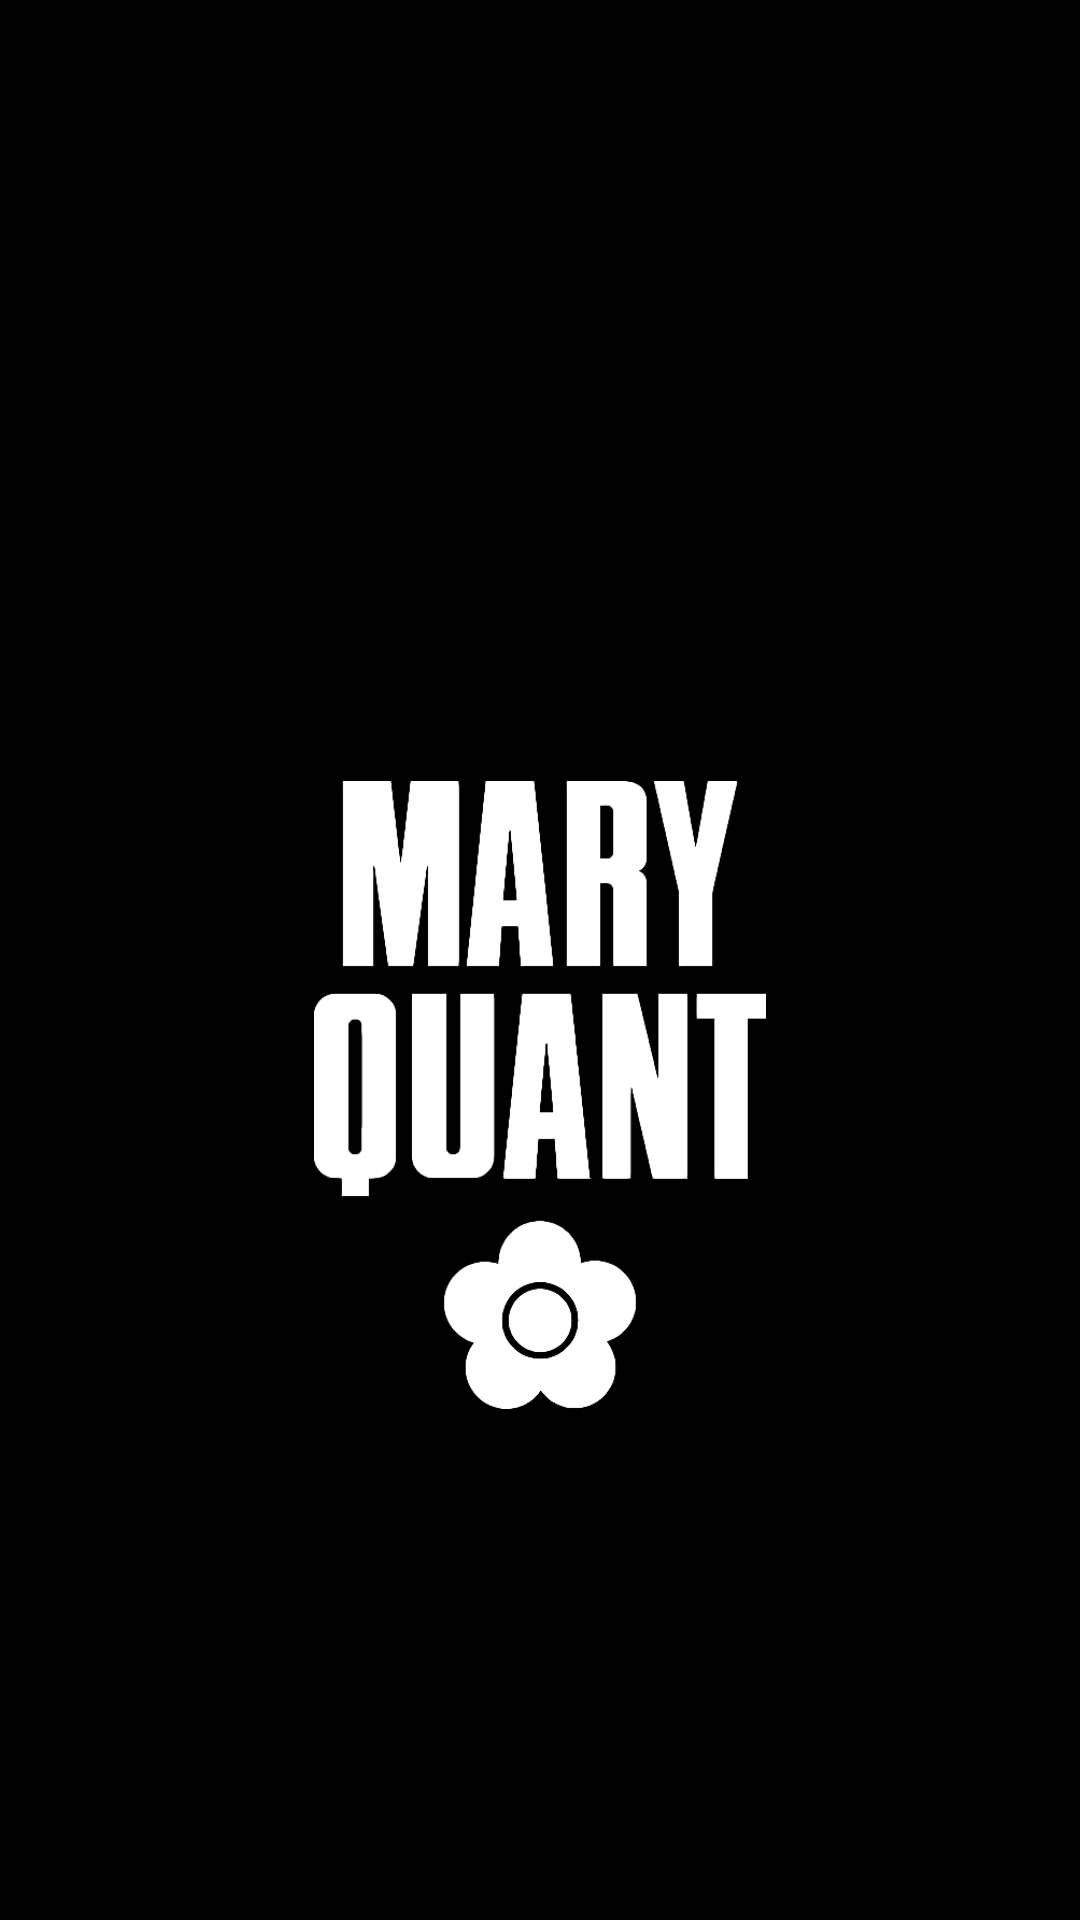 maryquant i10 - 20 MARY QUANT HQ Smartphone Wallpaper Collection